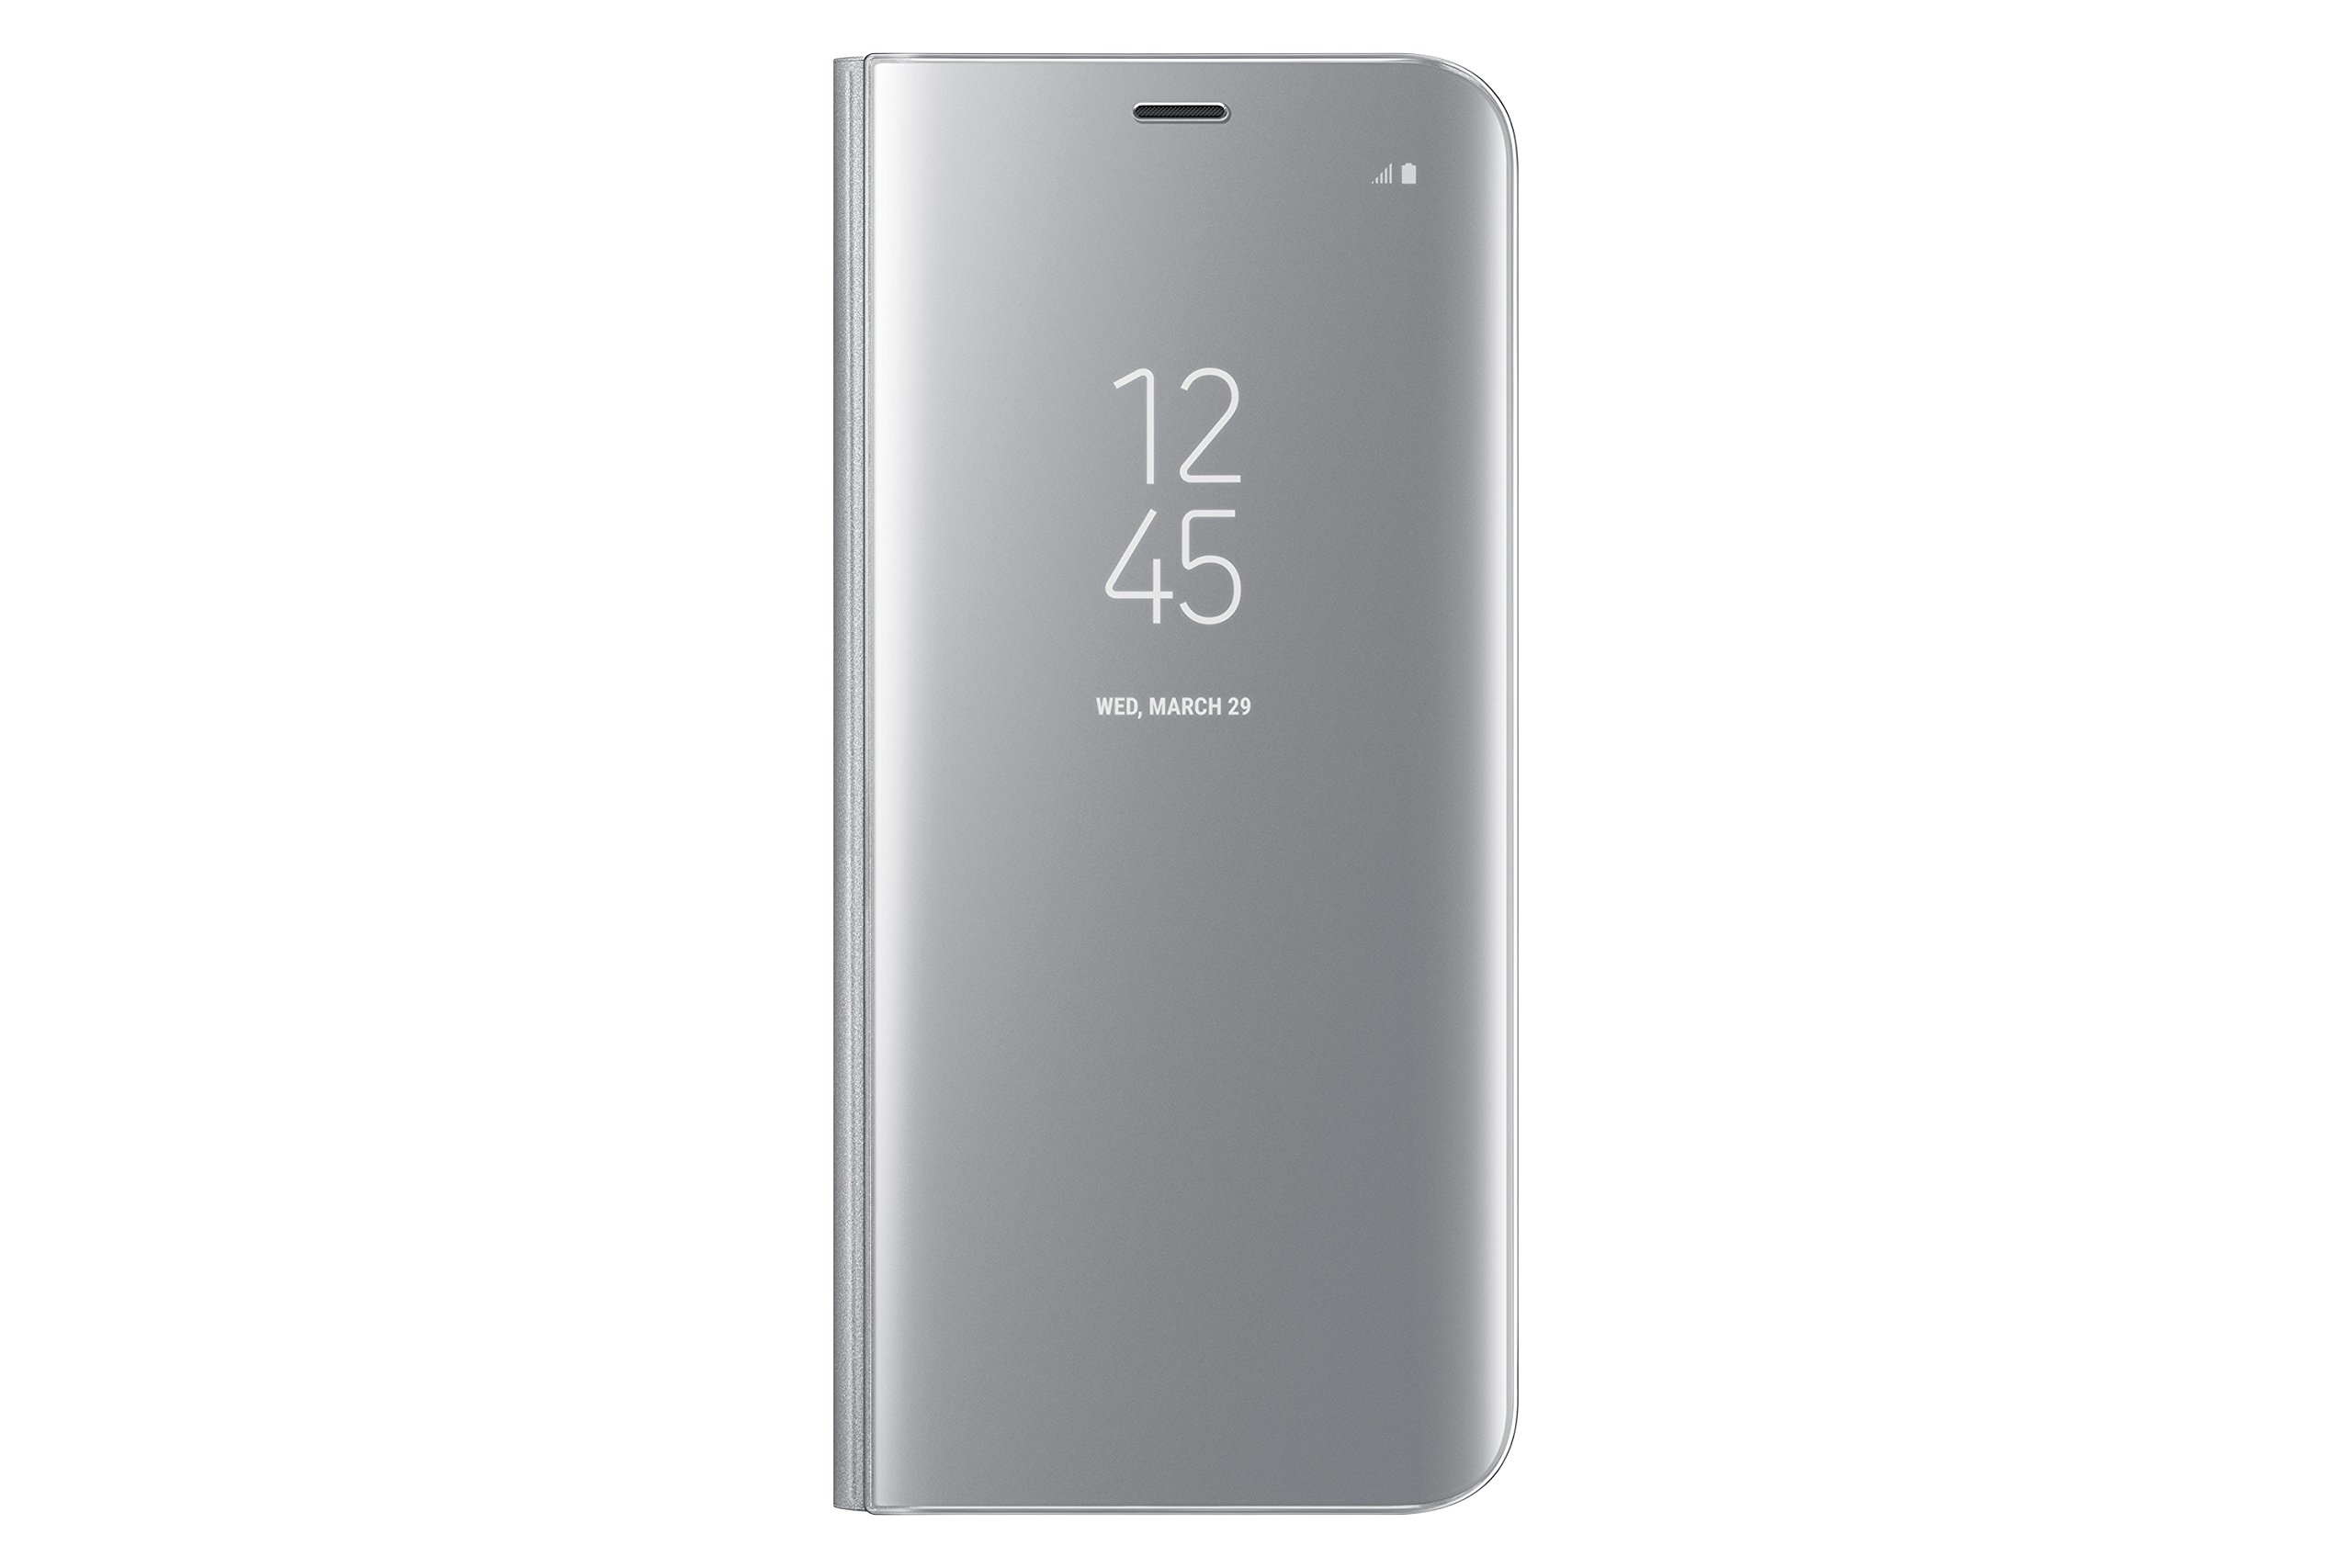 Samsung Galaxy S8 S-View Flip Cover with Kickstand, Silver